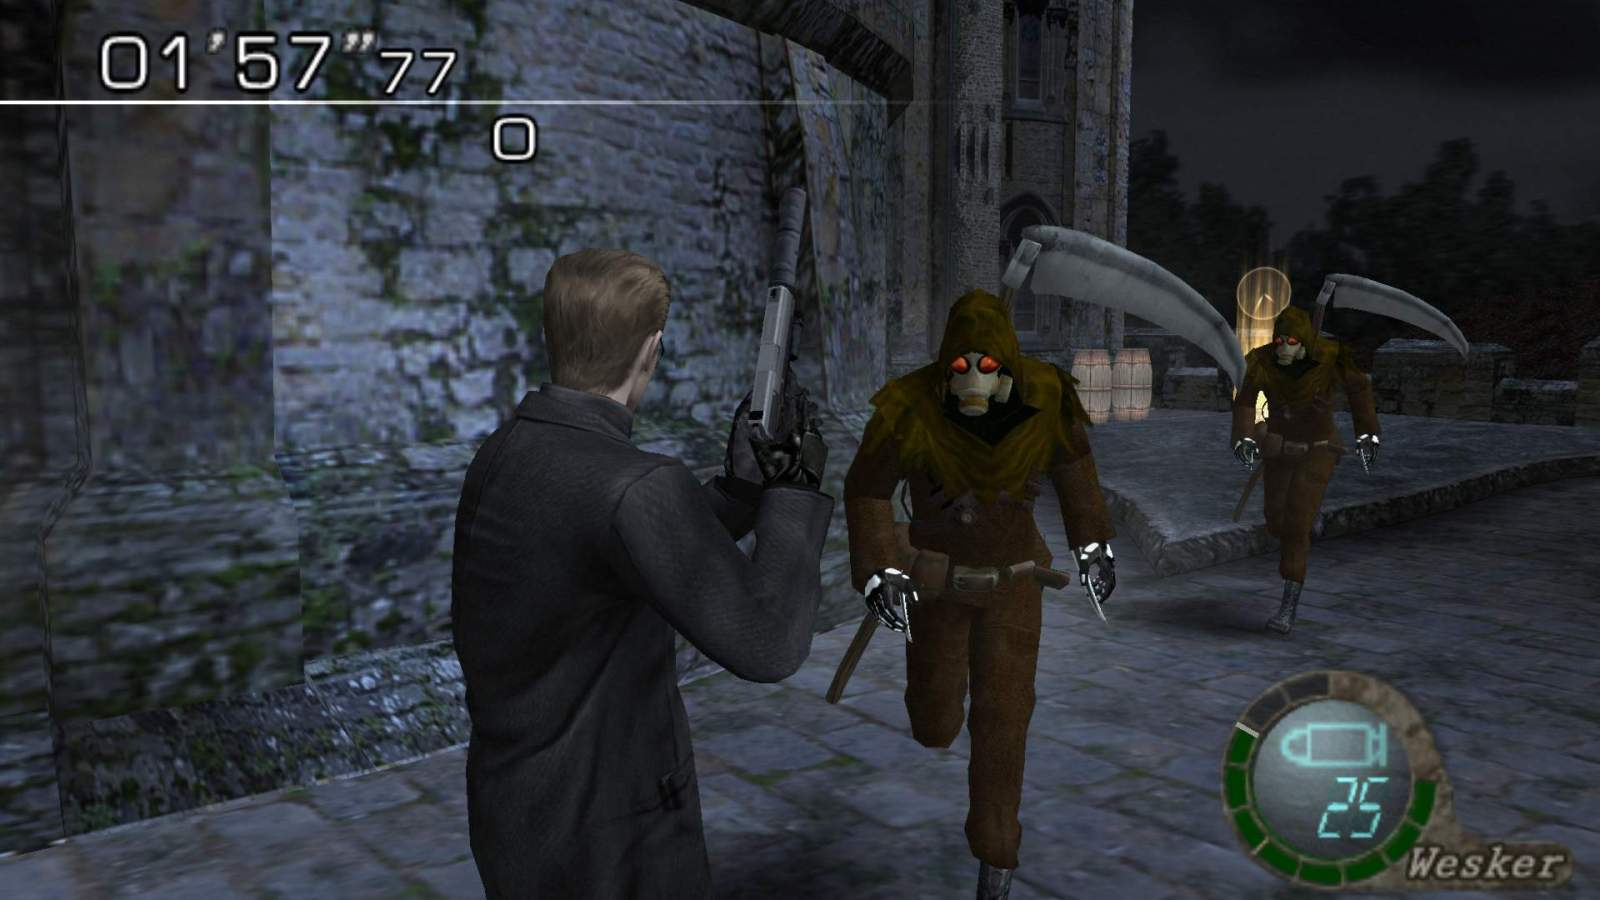 Hunk (Mr. Death) - Resident Evil The Mercenaries 3D - por Iluminados v.1.0 2u4jw91